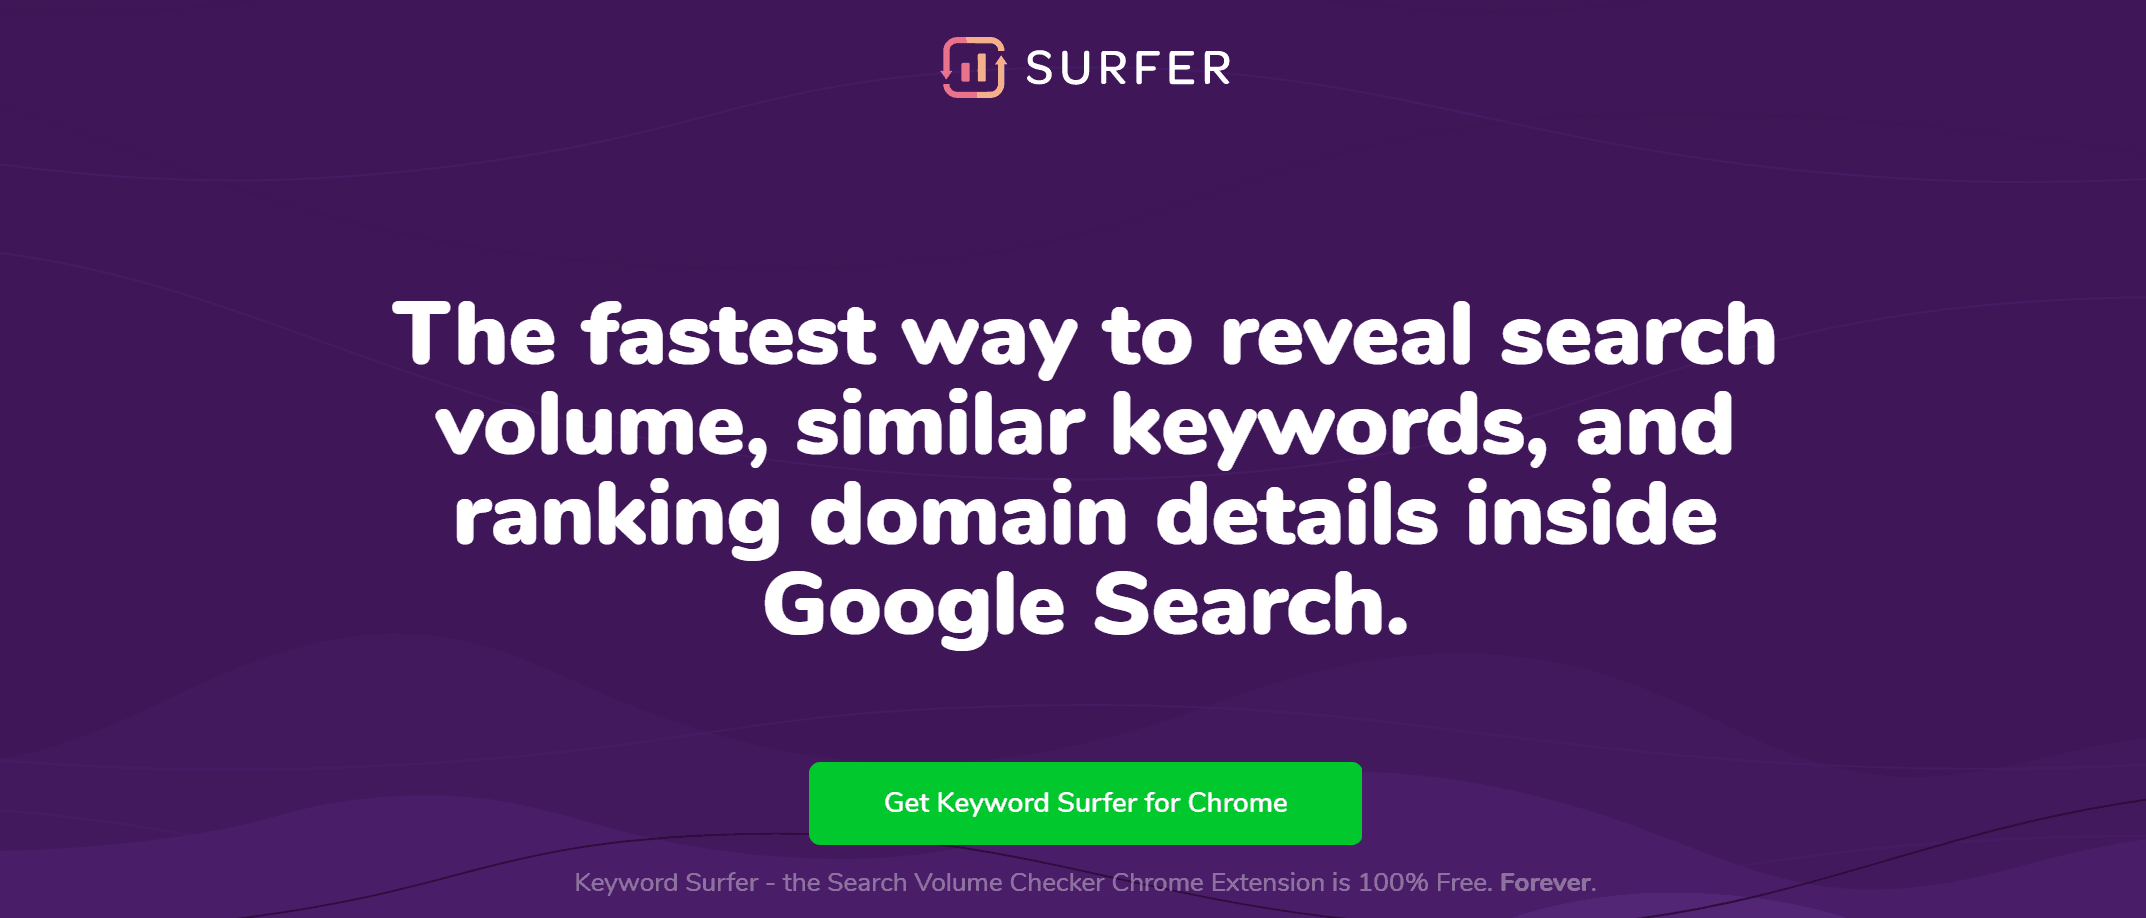 Keyword Surfer